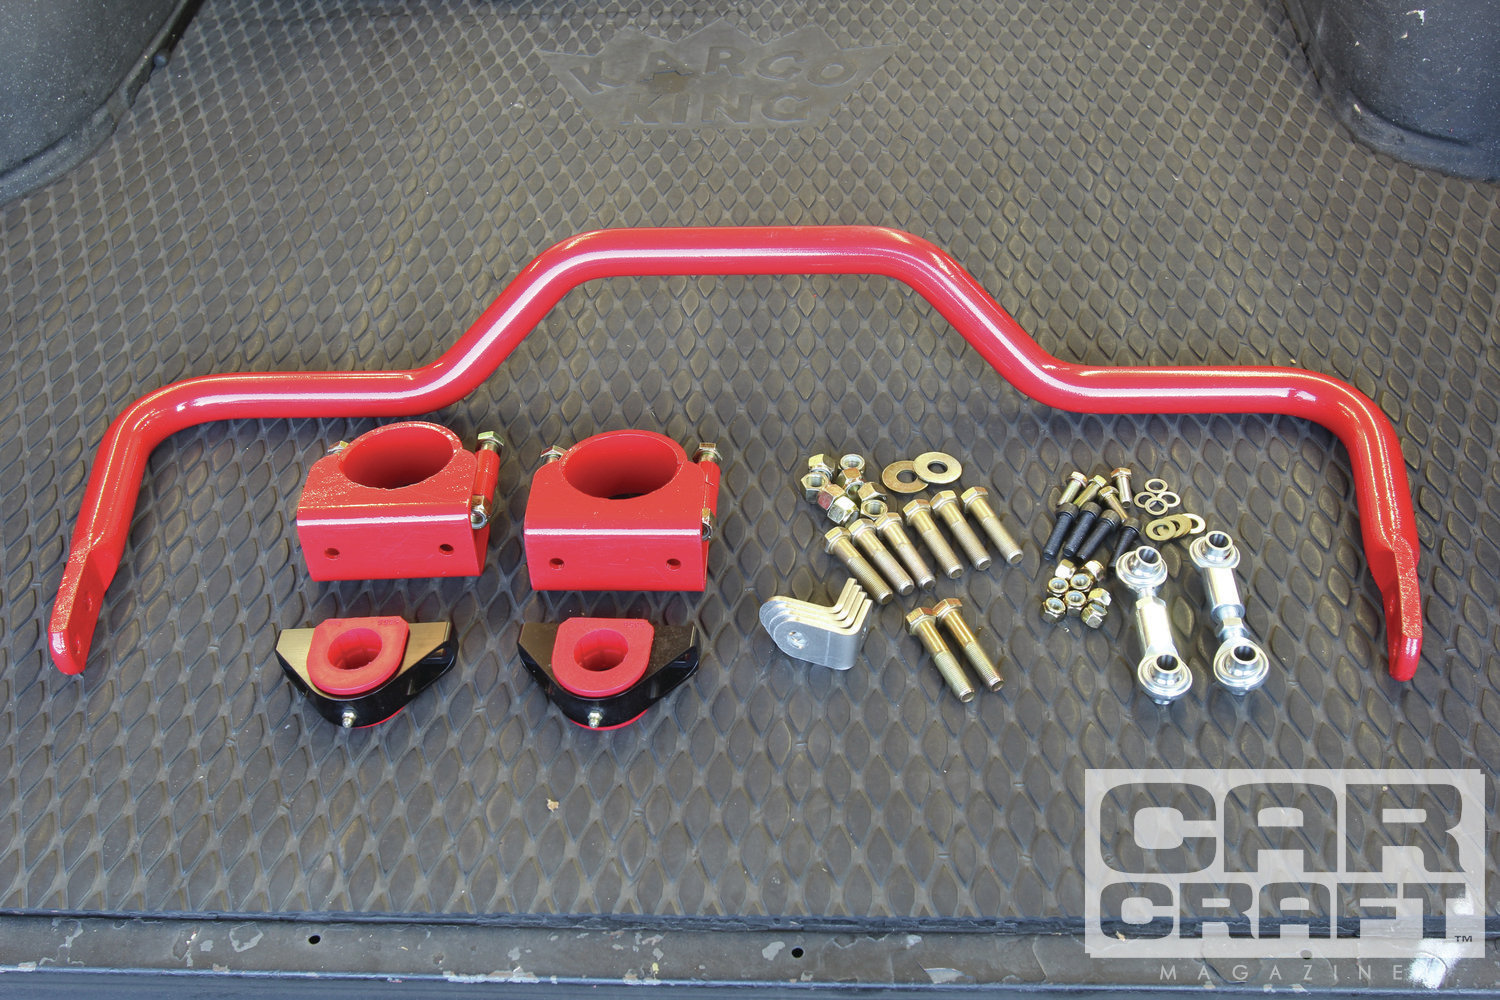 The Global West tubular front lower control arms eliminate the front sway-bar mount, so to control body twist we added this BMR rear antiroll bar that clamps to the rear axle. The bar allows tuning with two different front connections, and it's possible to preload the bar with the end links. A minor amount of preload can counteract body twist.